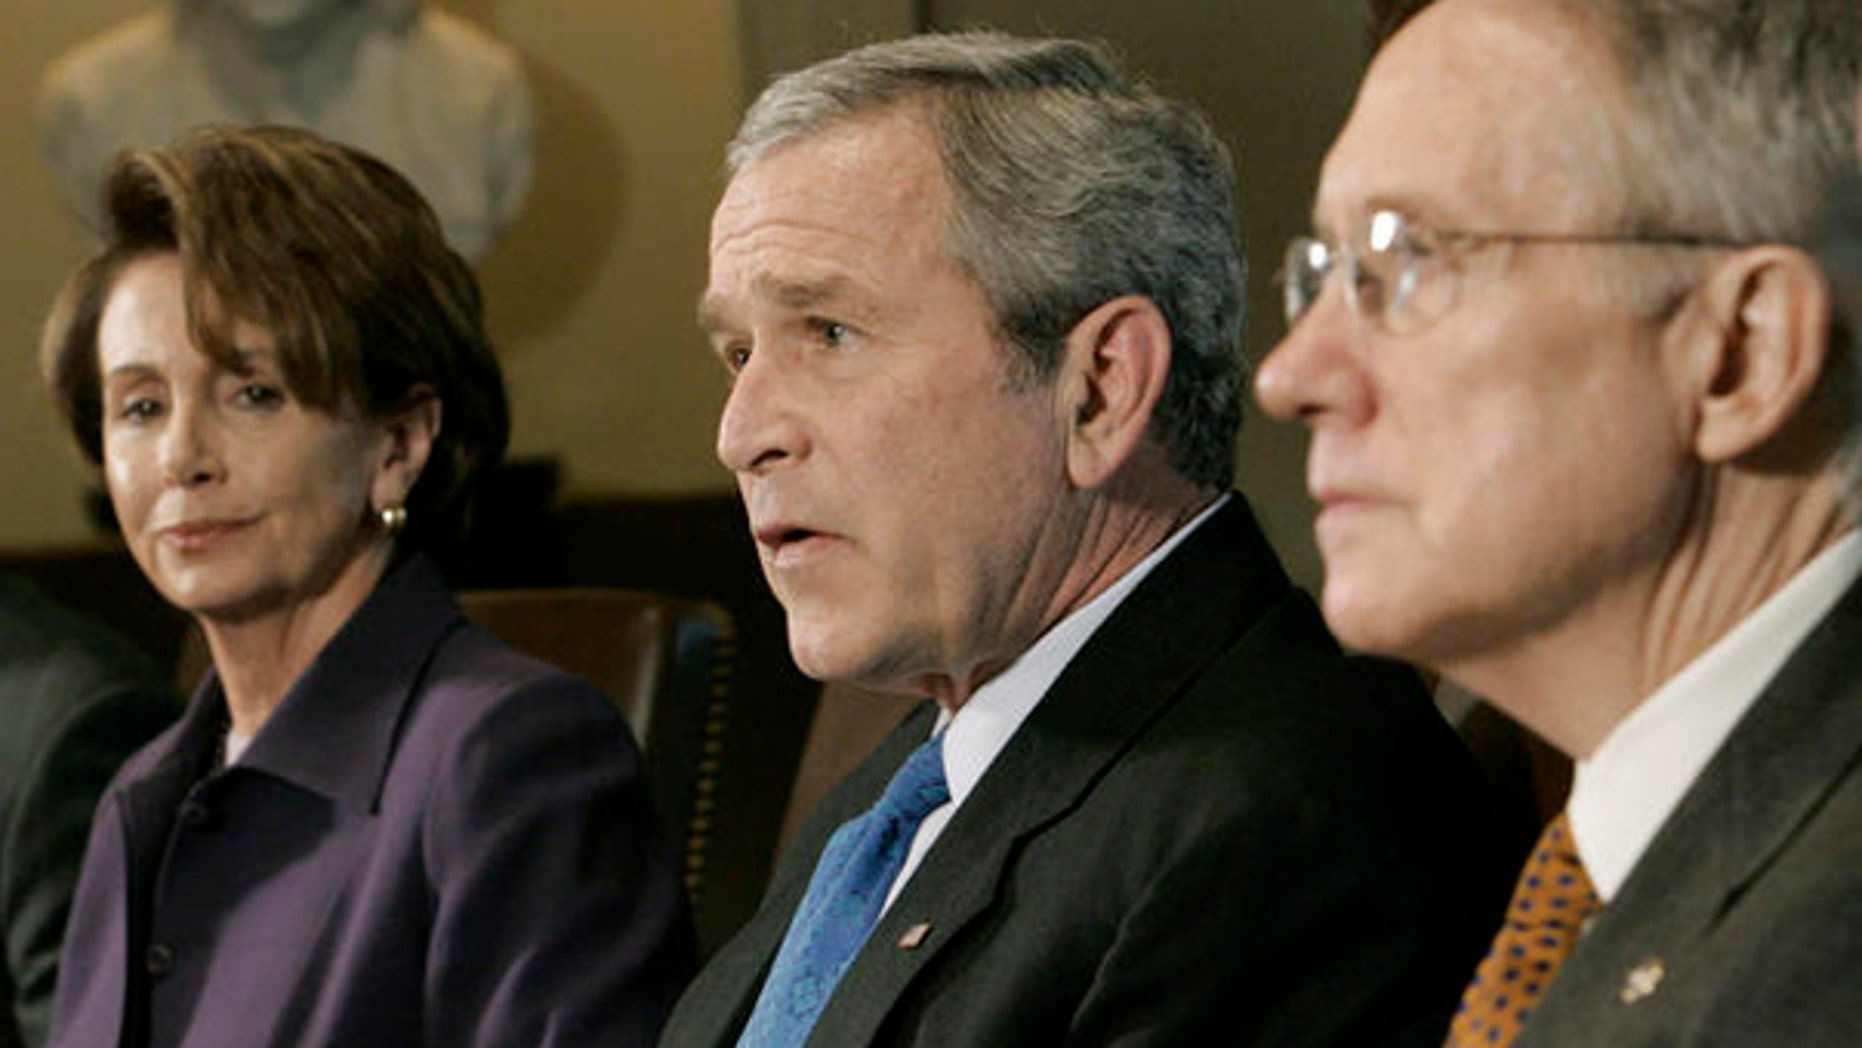 House Speaker Nancy Pelosi,  President George W. Bush, and Senate Majority Leader Harry Reid during a meeting at the White House, April 18, 2007. (AP)